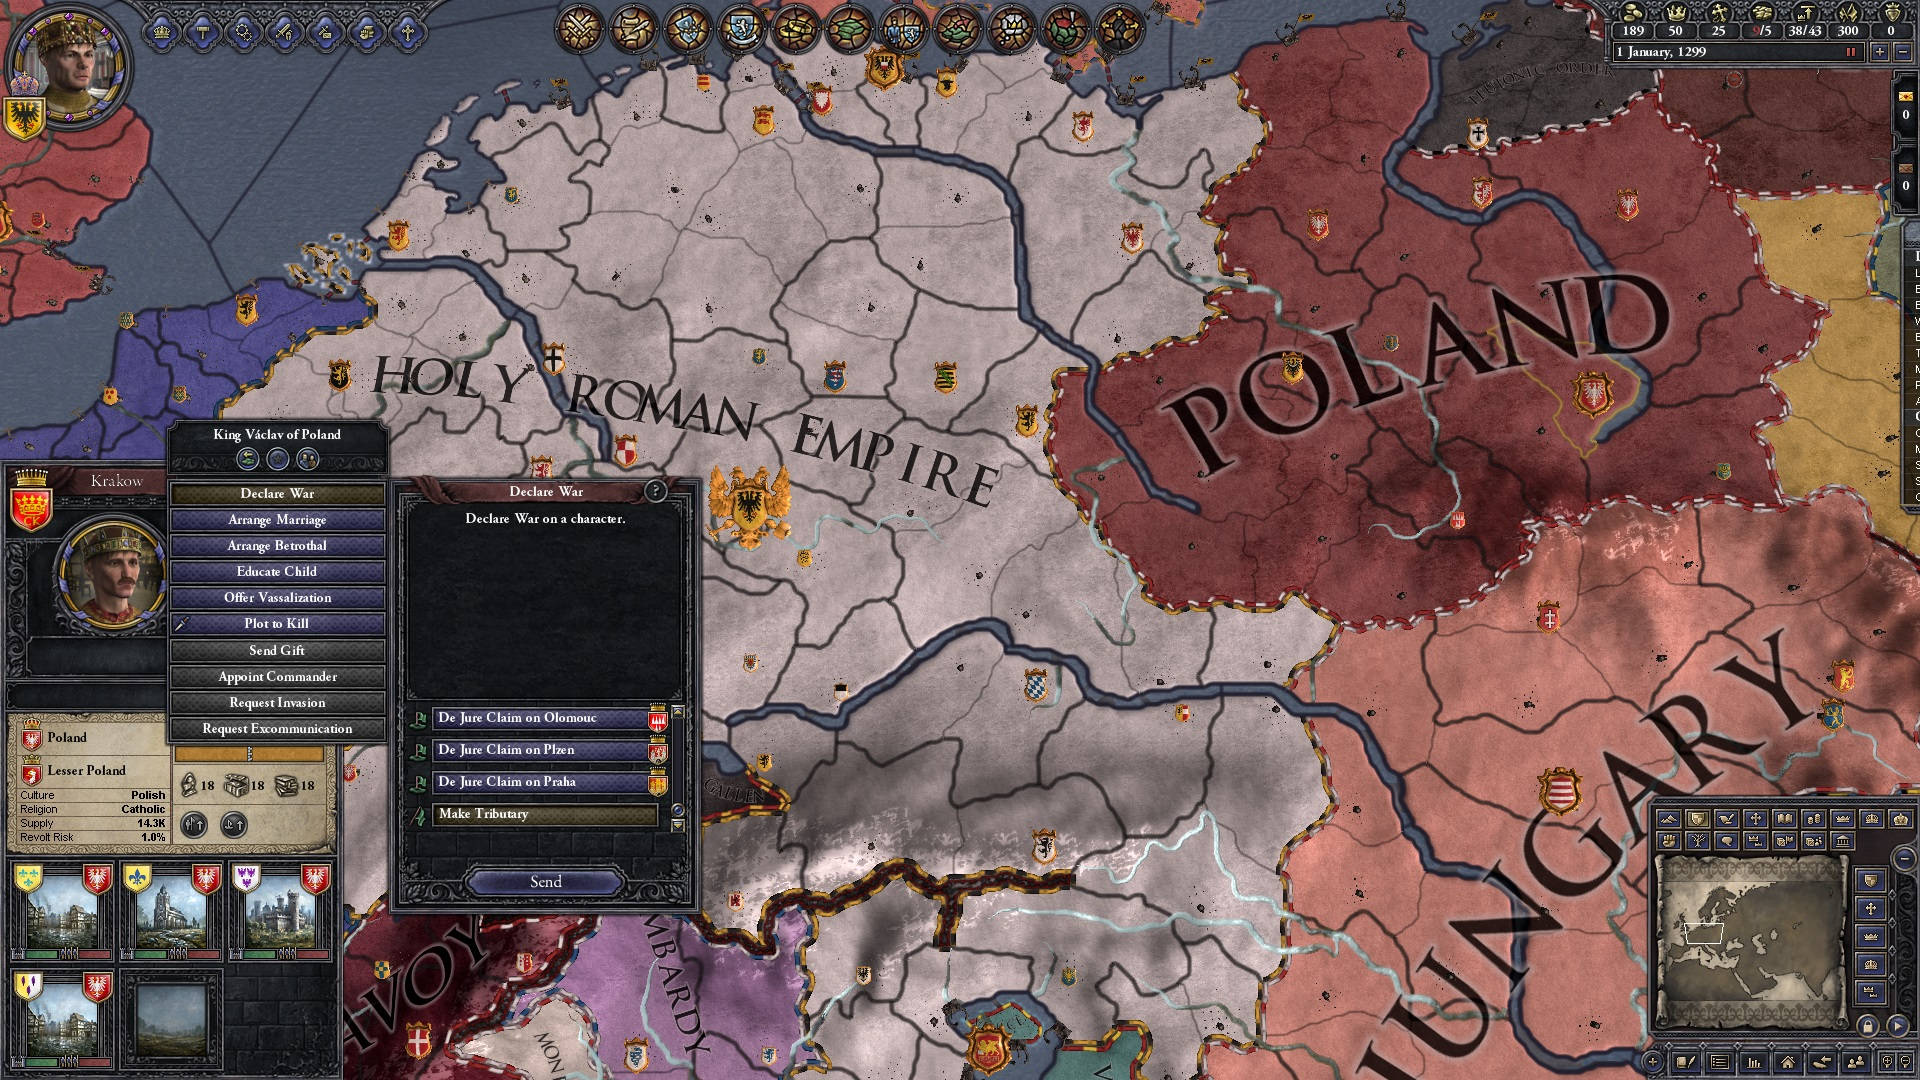 crusader_kings_2_horse_lords_expansion_tributary_screenshot-1